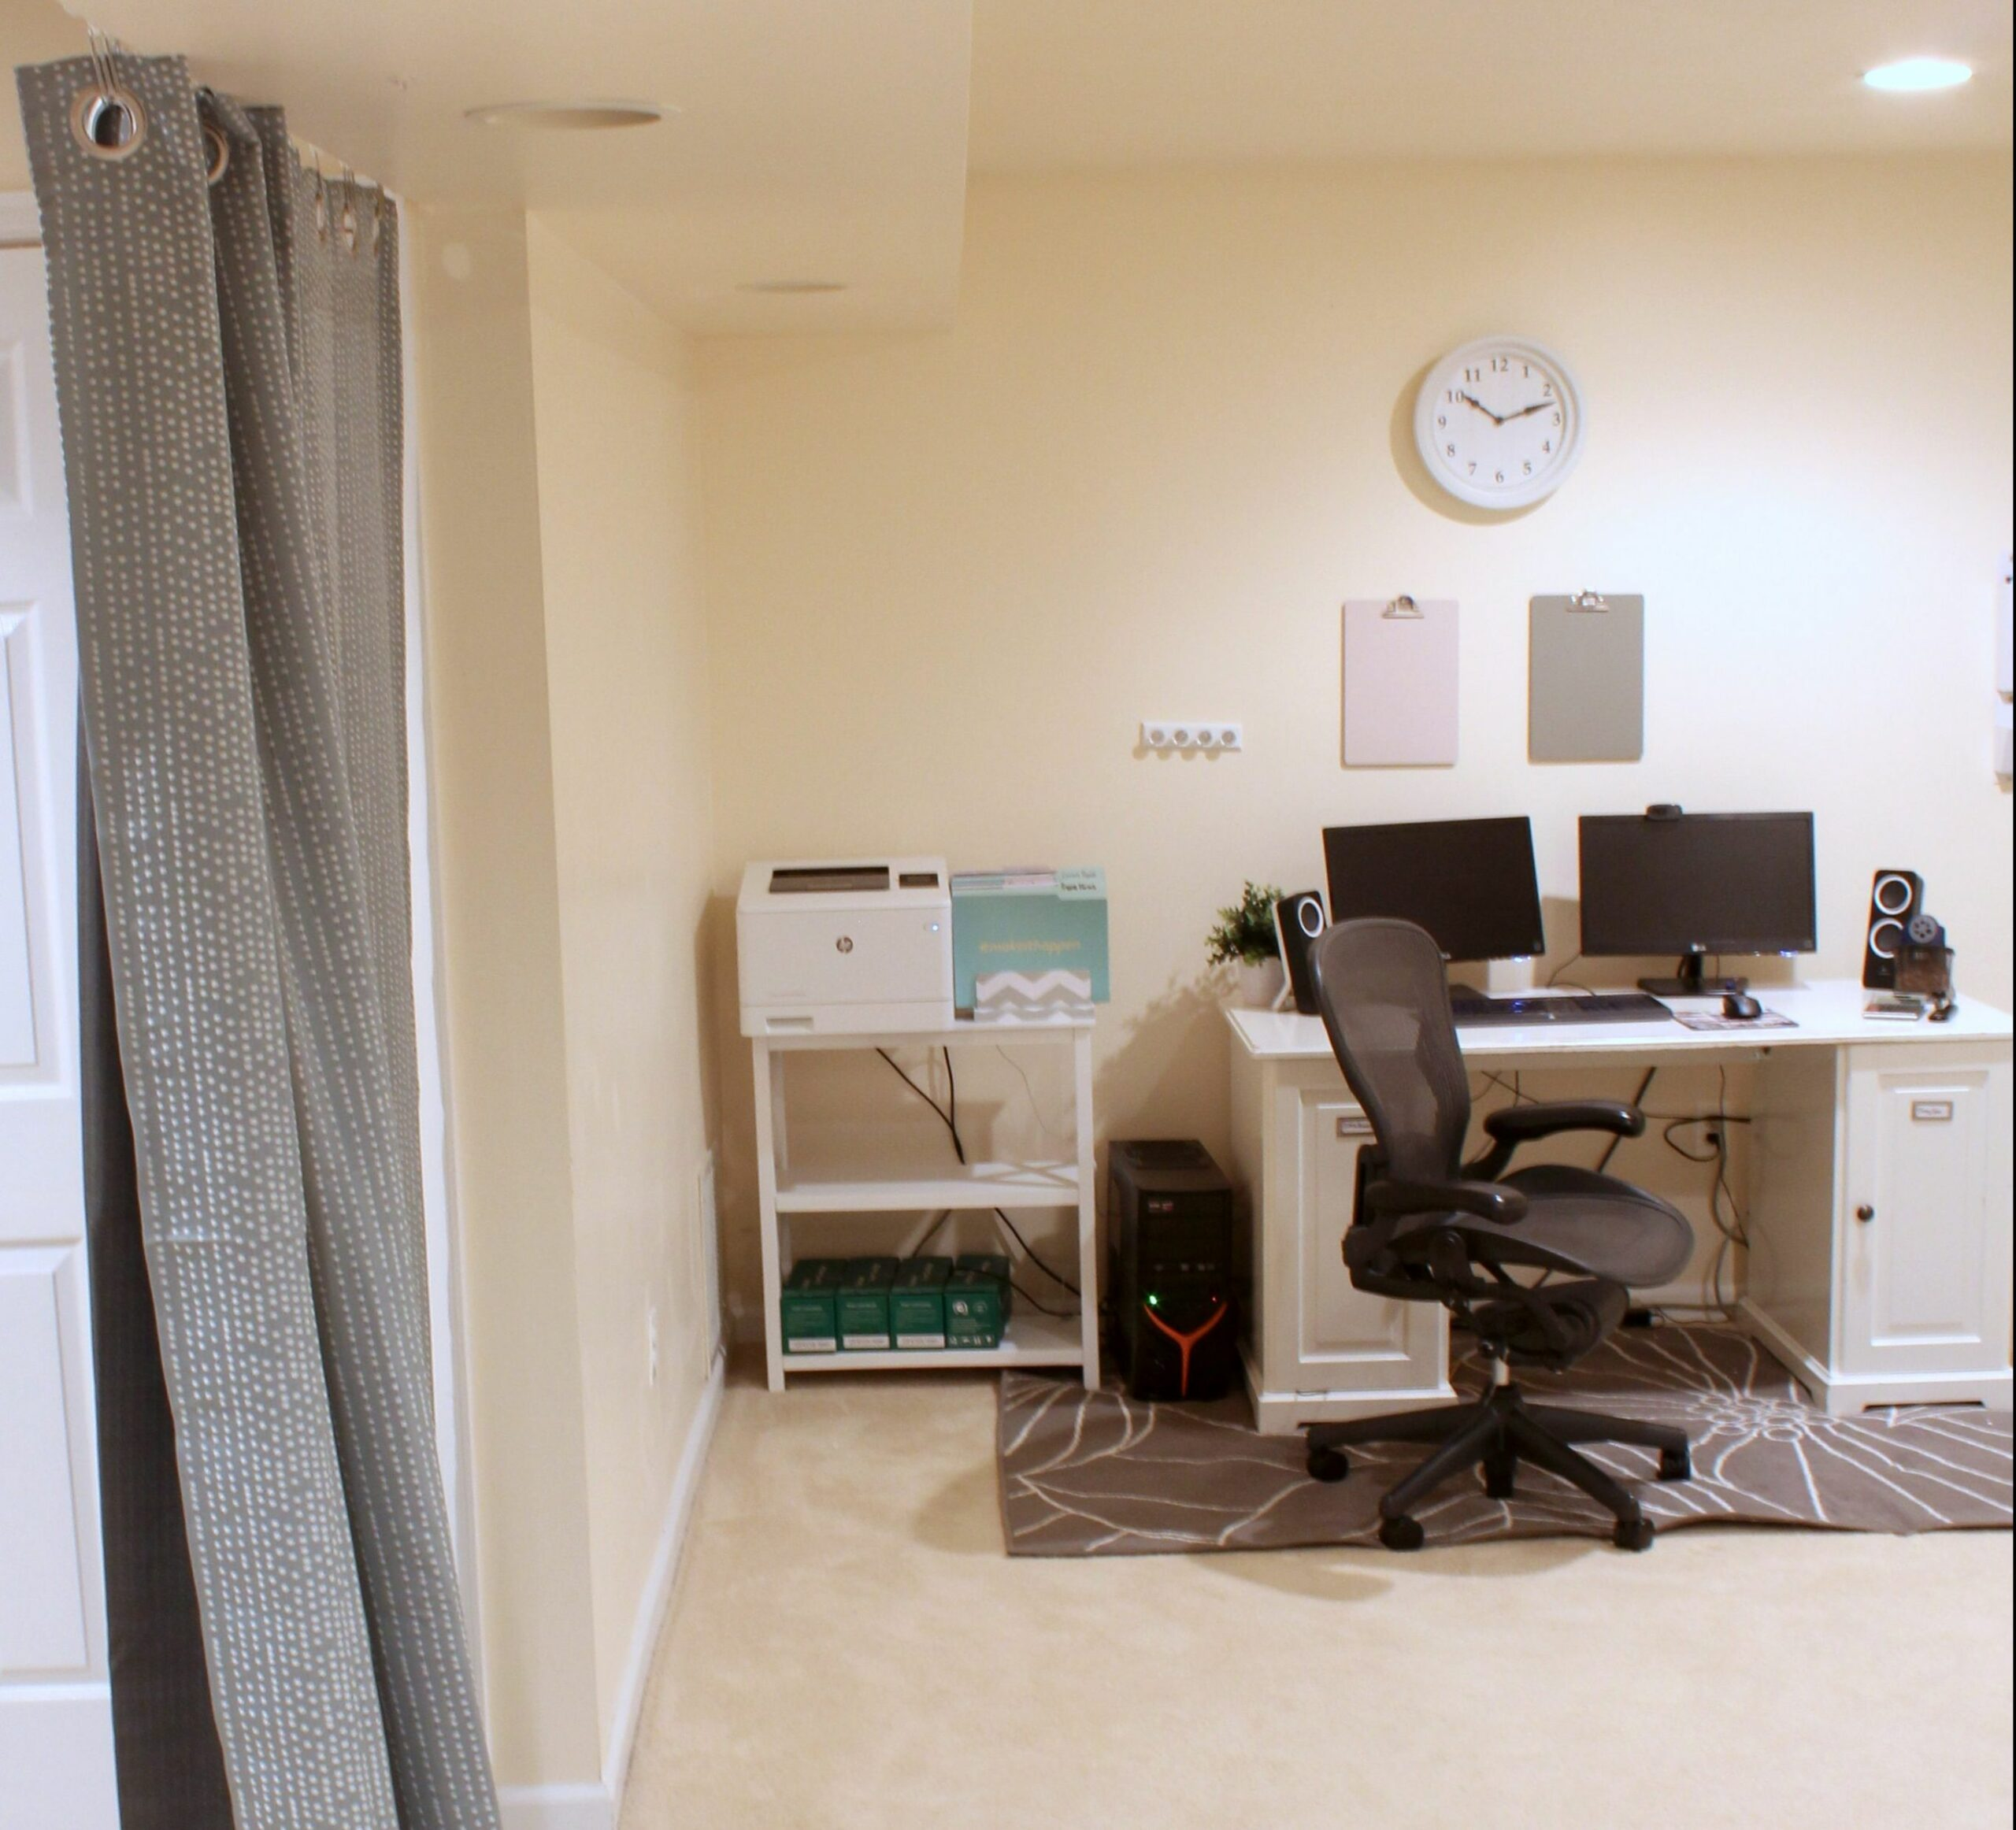 Home Office Ideas on a Budget: 12 Easy Office Upgrades | Busy Budgeter - home office ideas cheap